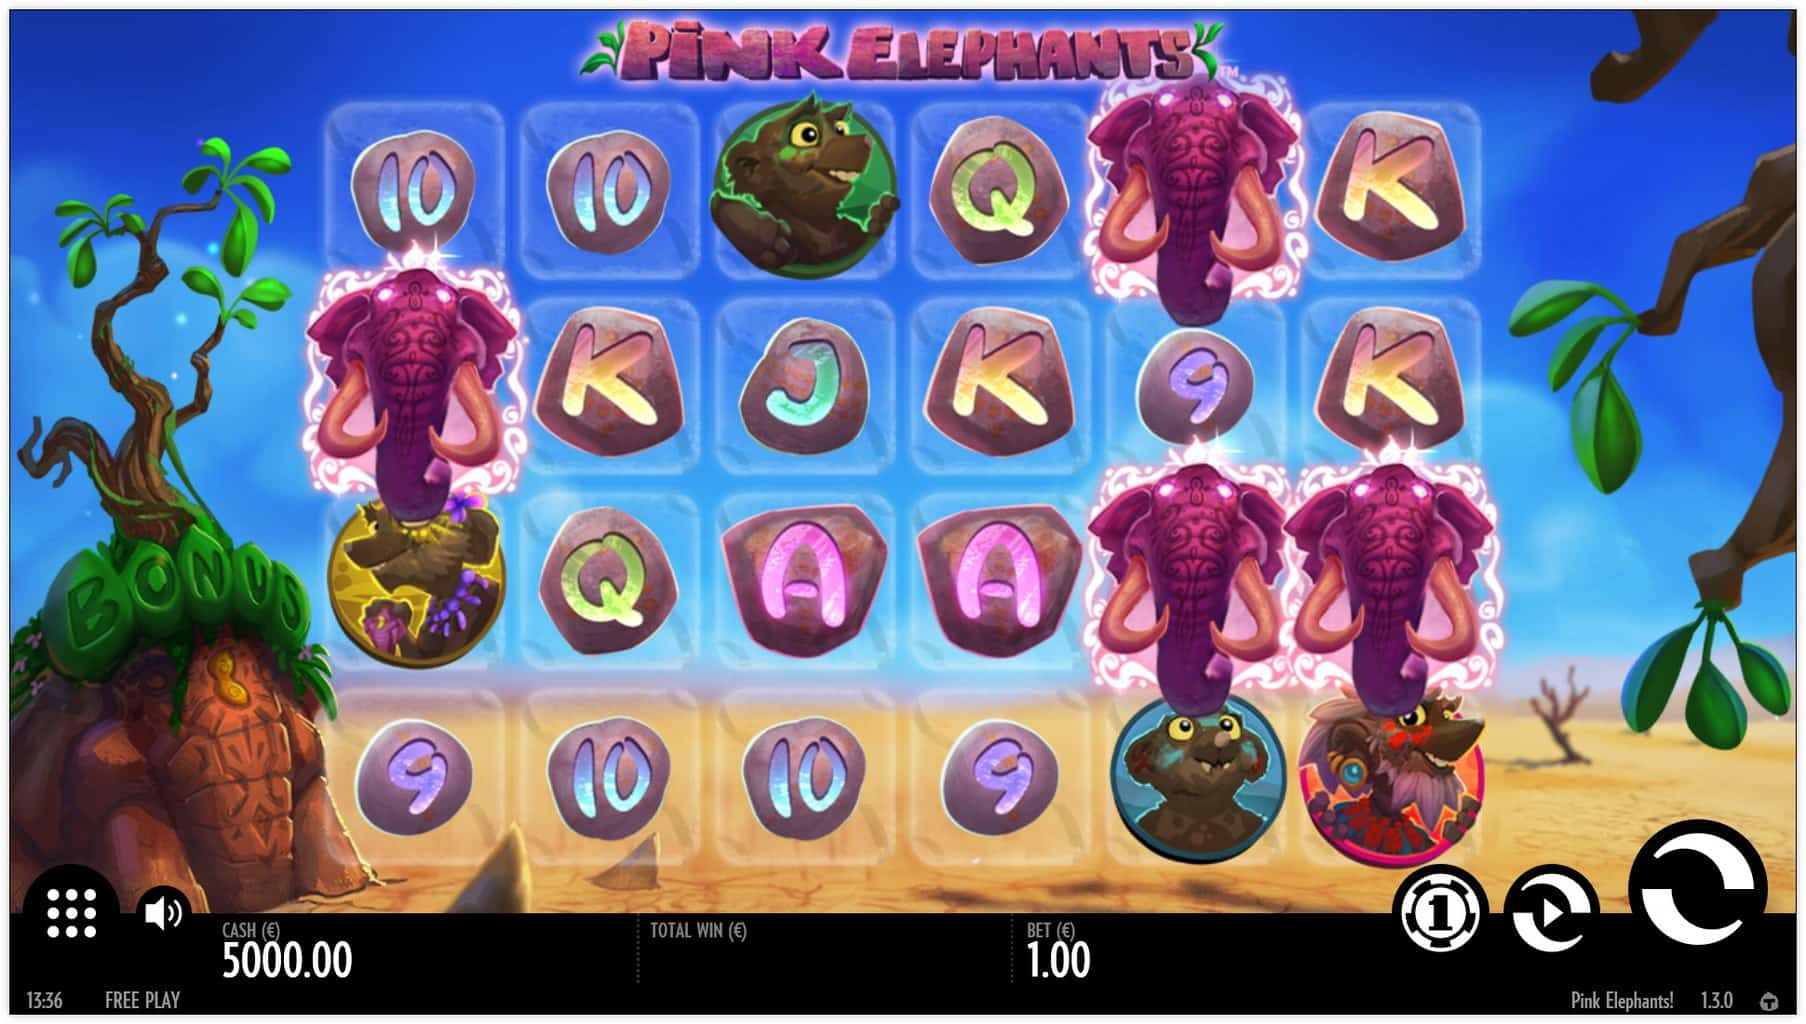 Thunderkick - Pink Elephants - Reels - Casinogroundsdotcom